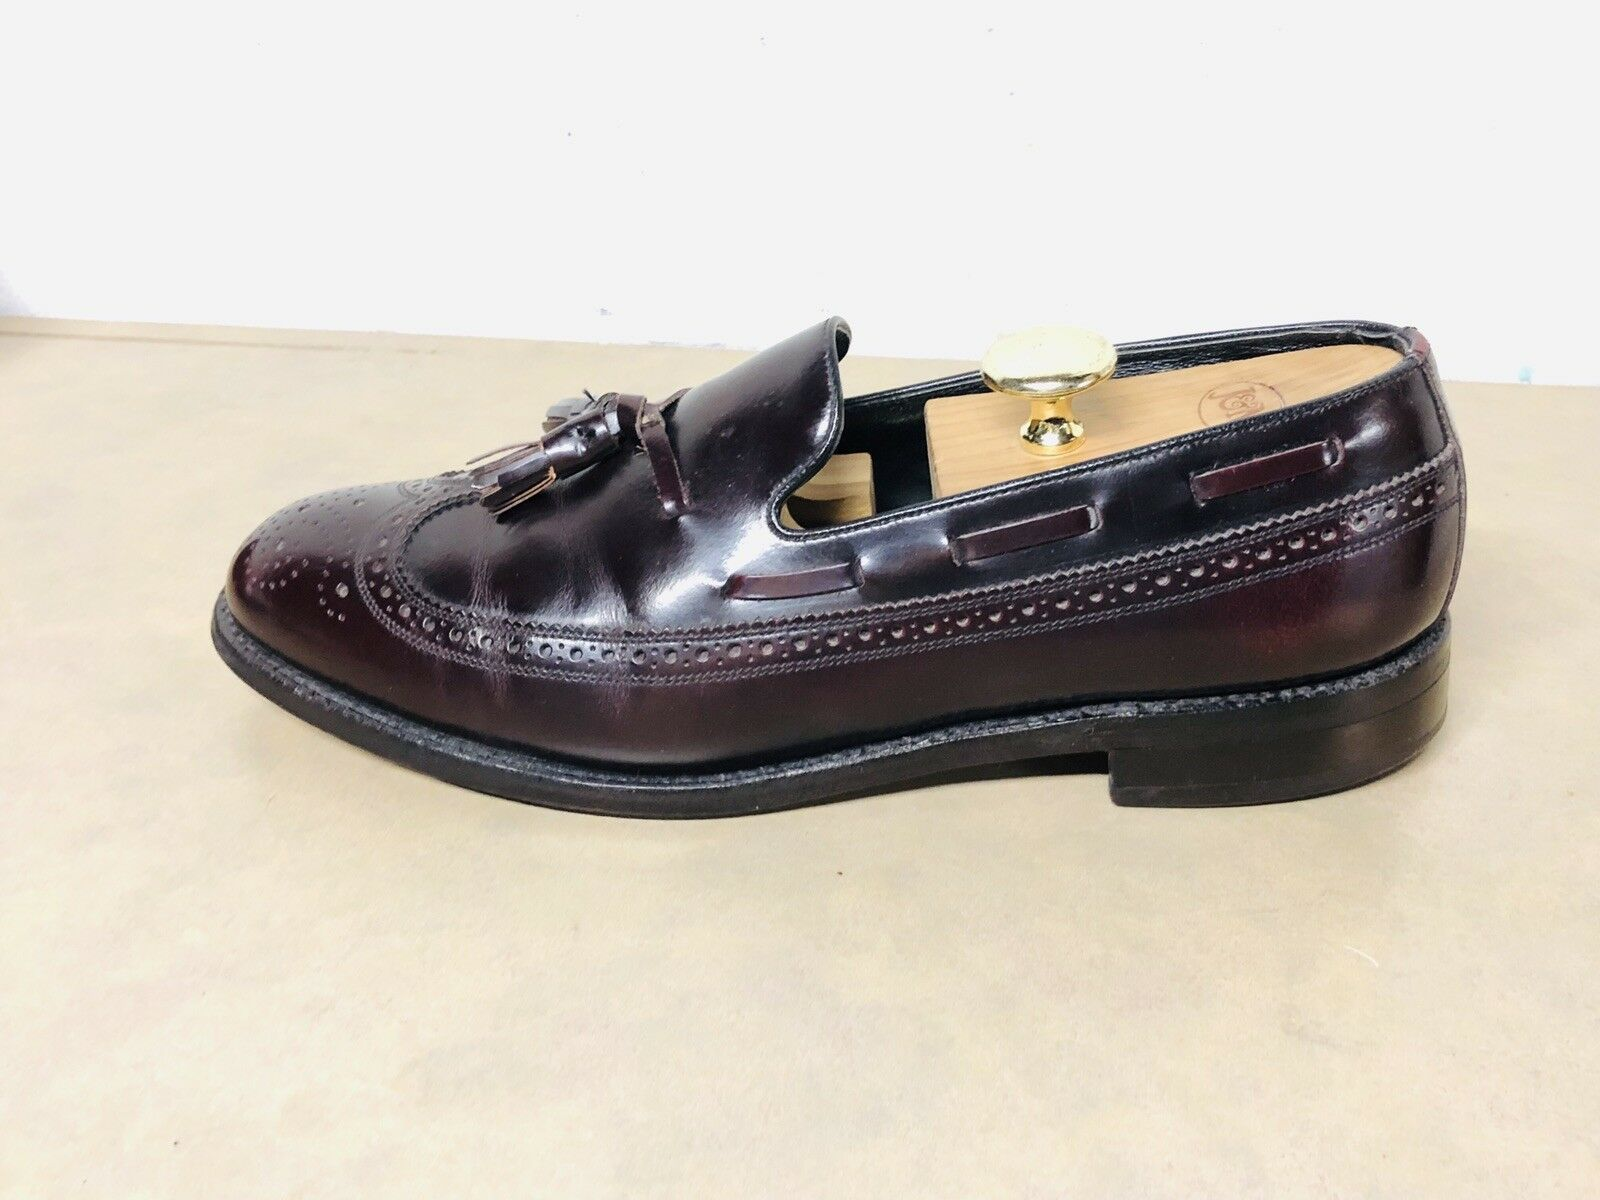 Florsheim burgundy wingtip tassell loafers 305621 men Size 10 D Dress Casual